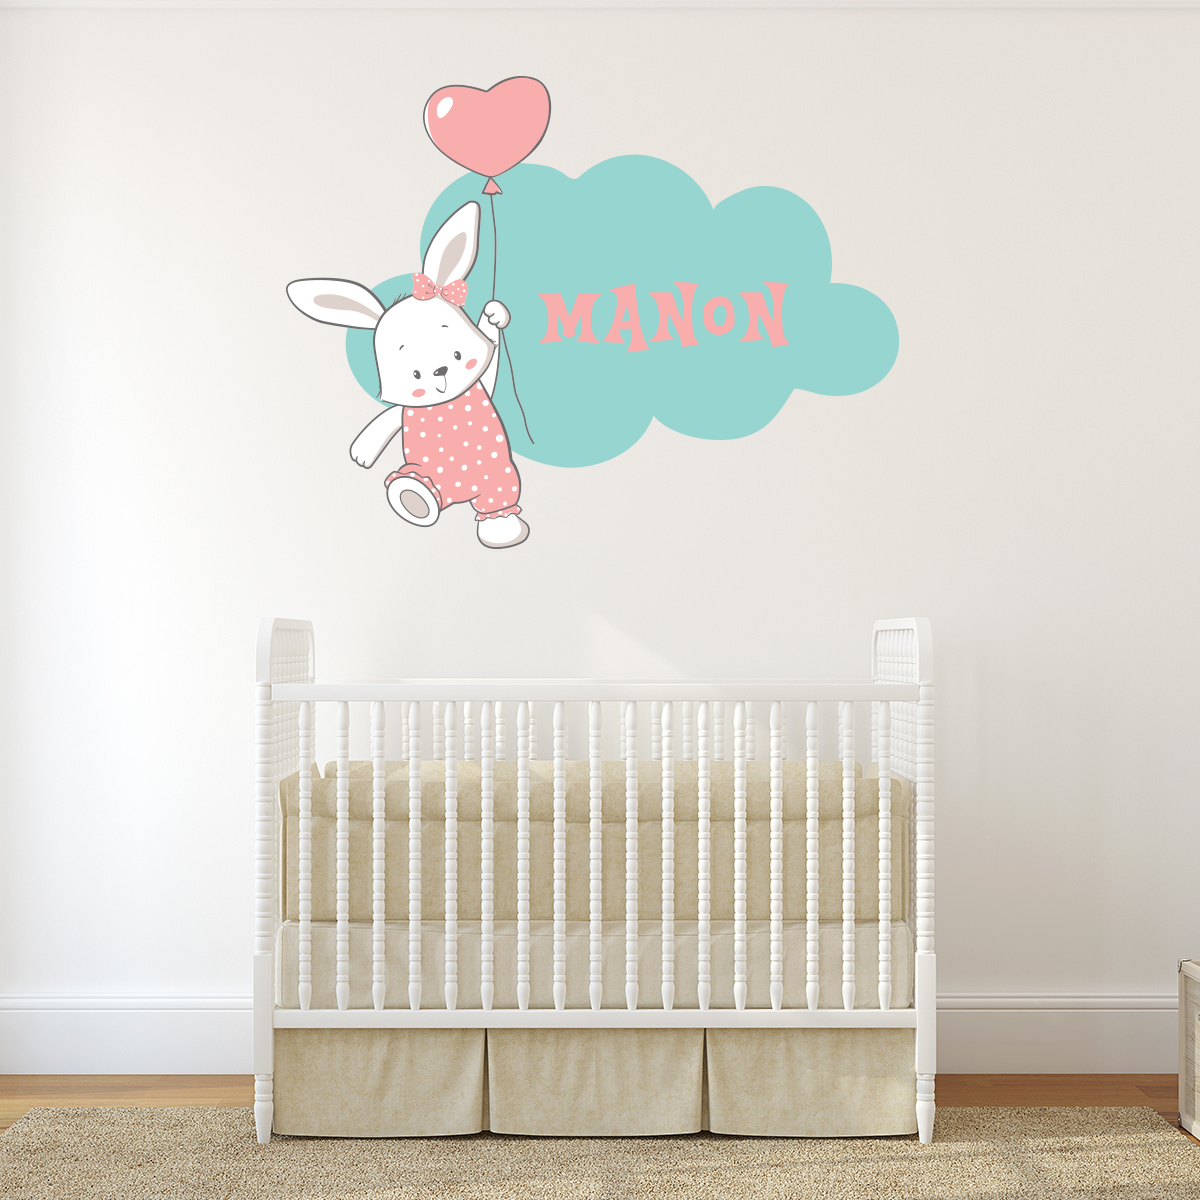 sticker pr nom personnalis lapine et nuage stickers animaux animaux de la ferme ambiance. Black Bedroom Furniture Sets. Home Design Ideas